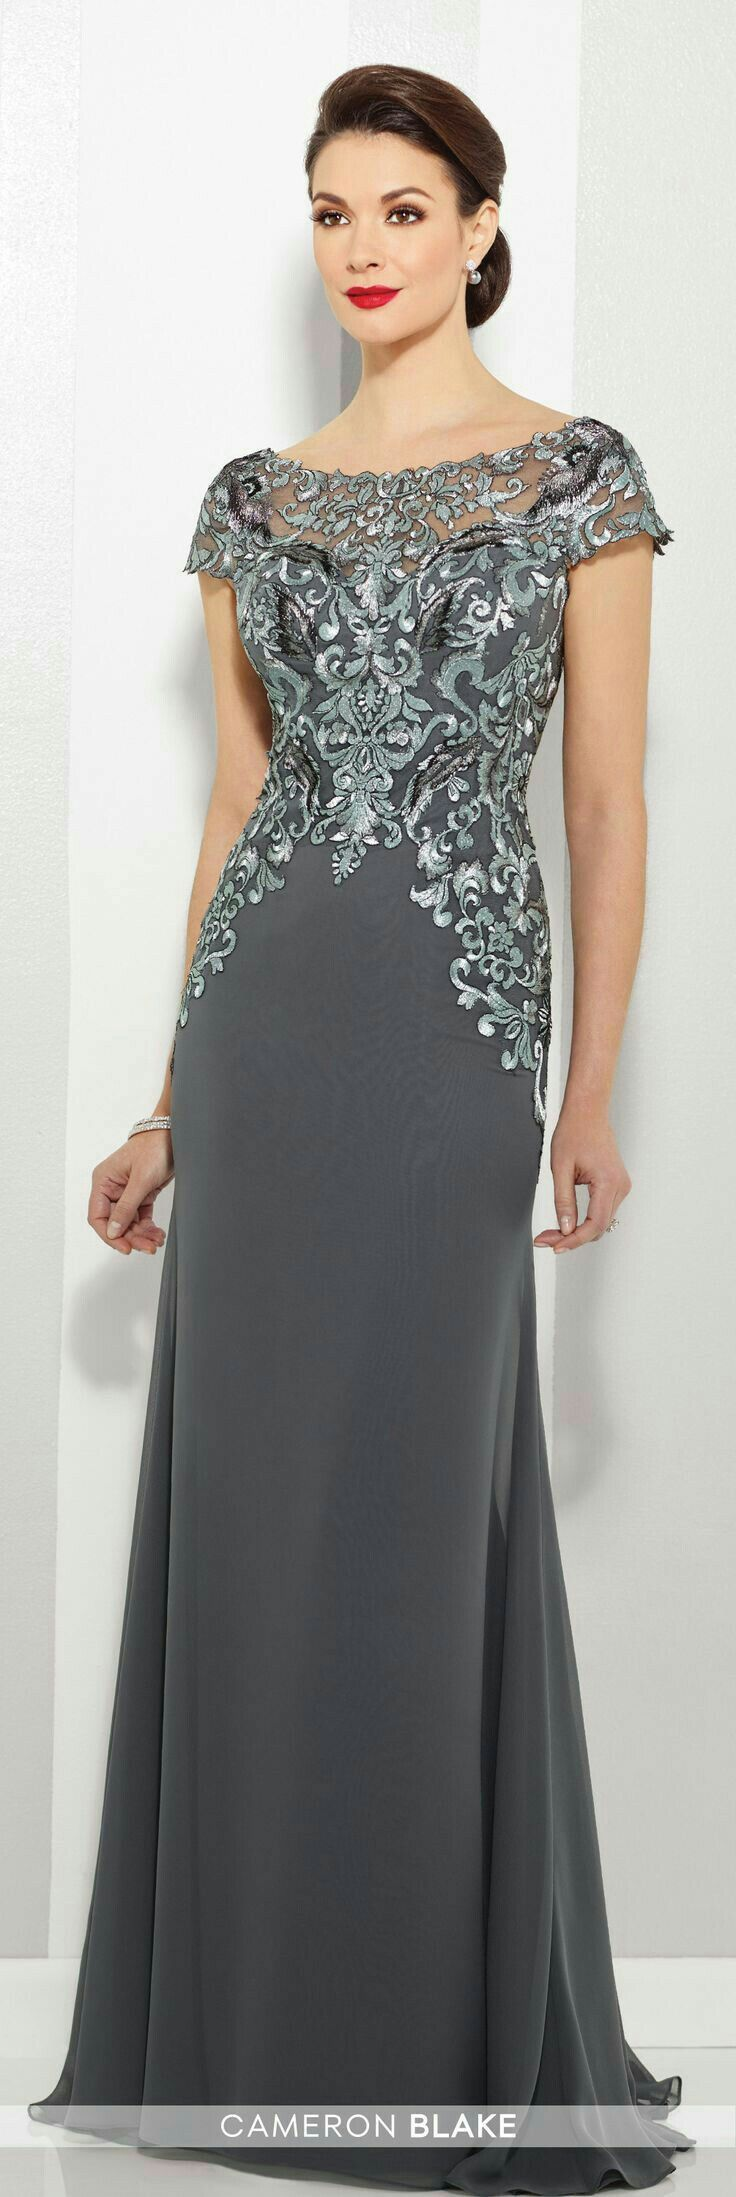 Formal dresses to wear to a wedding  This is a lovely mother of the bride or groom dress  Wedding Style